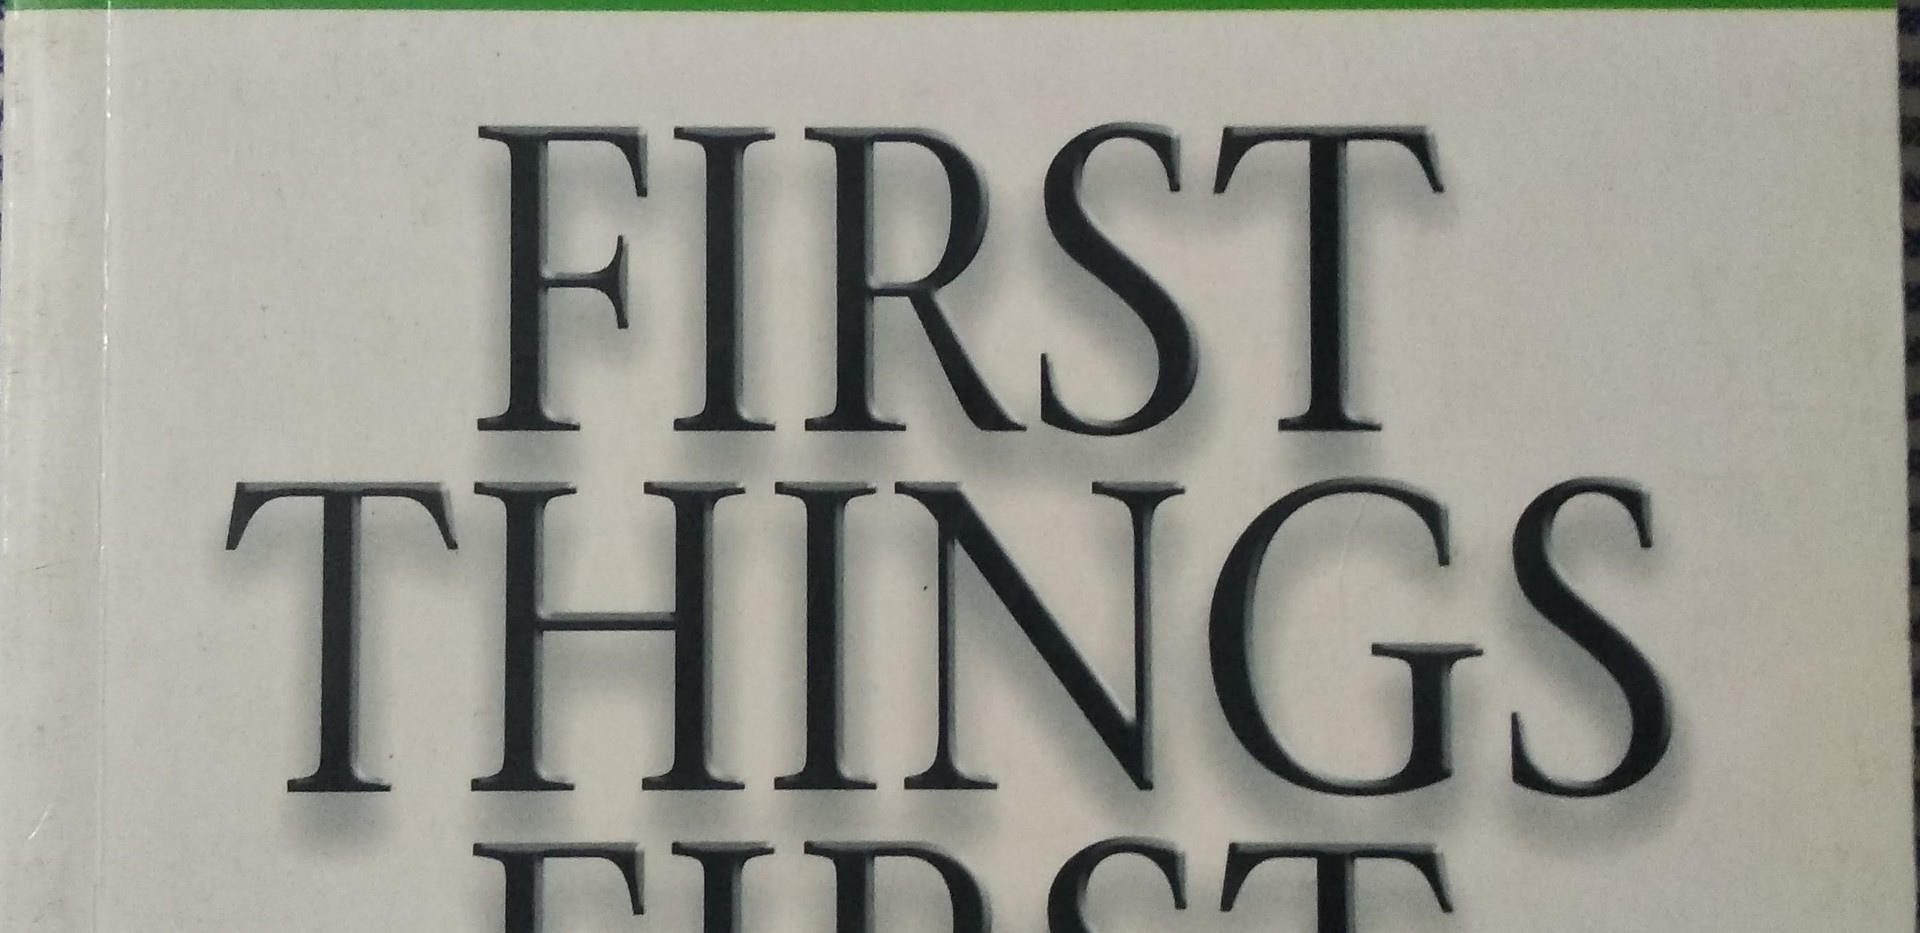 First Things First - Stephen R. Covery